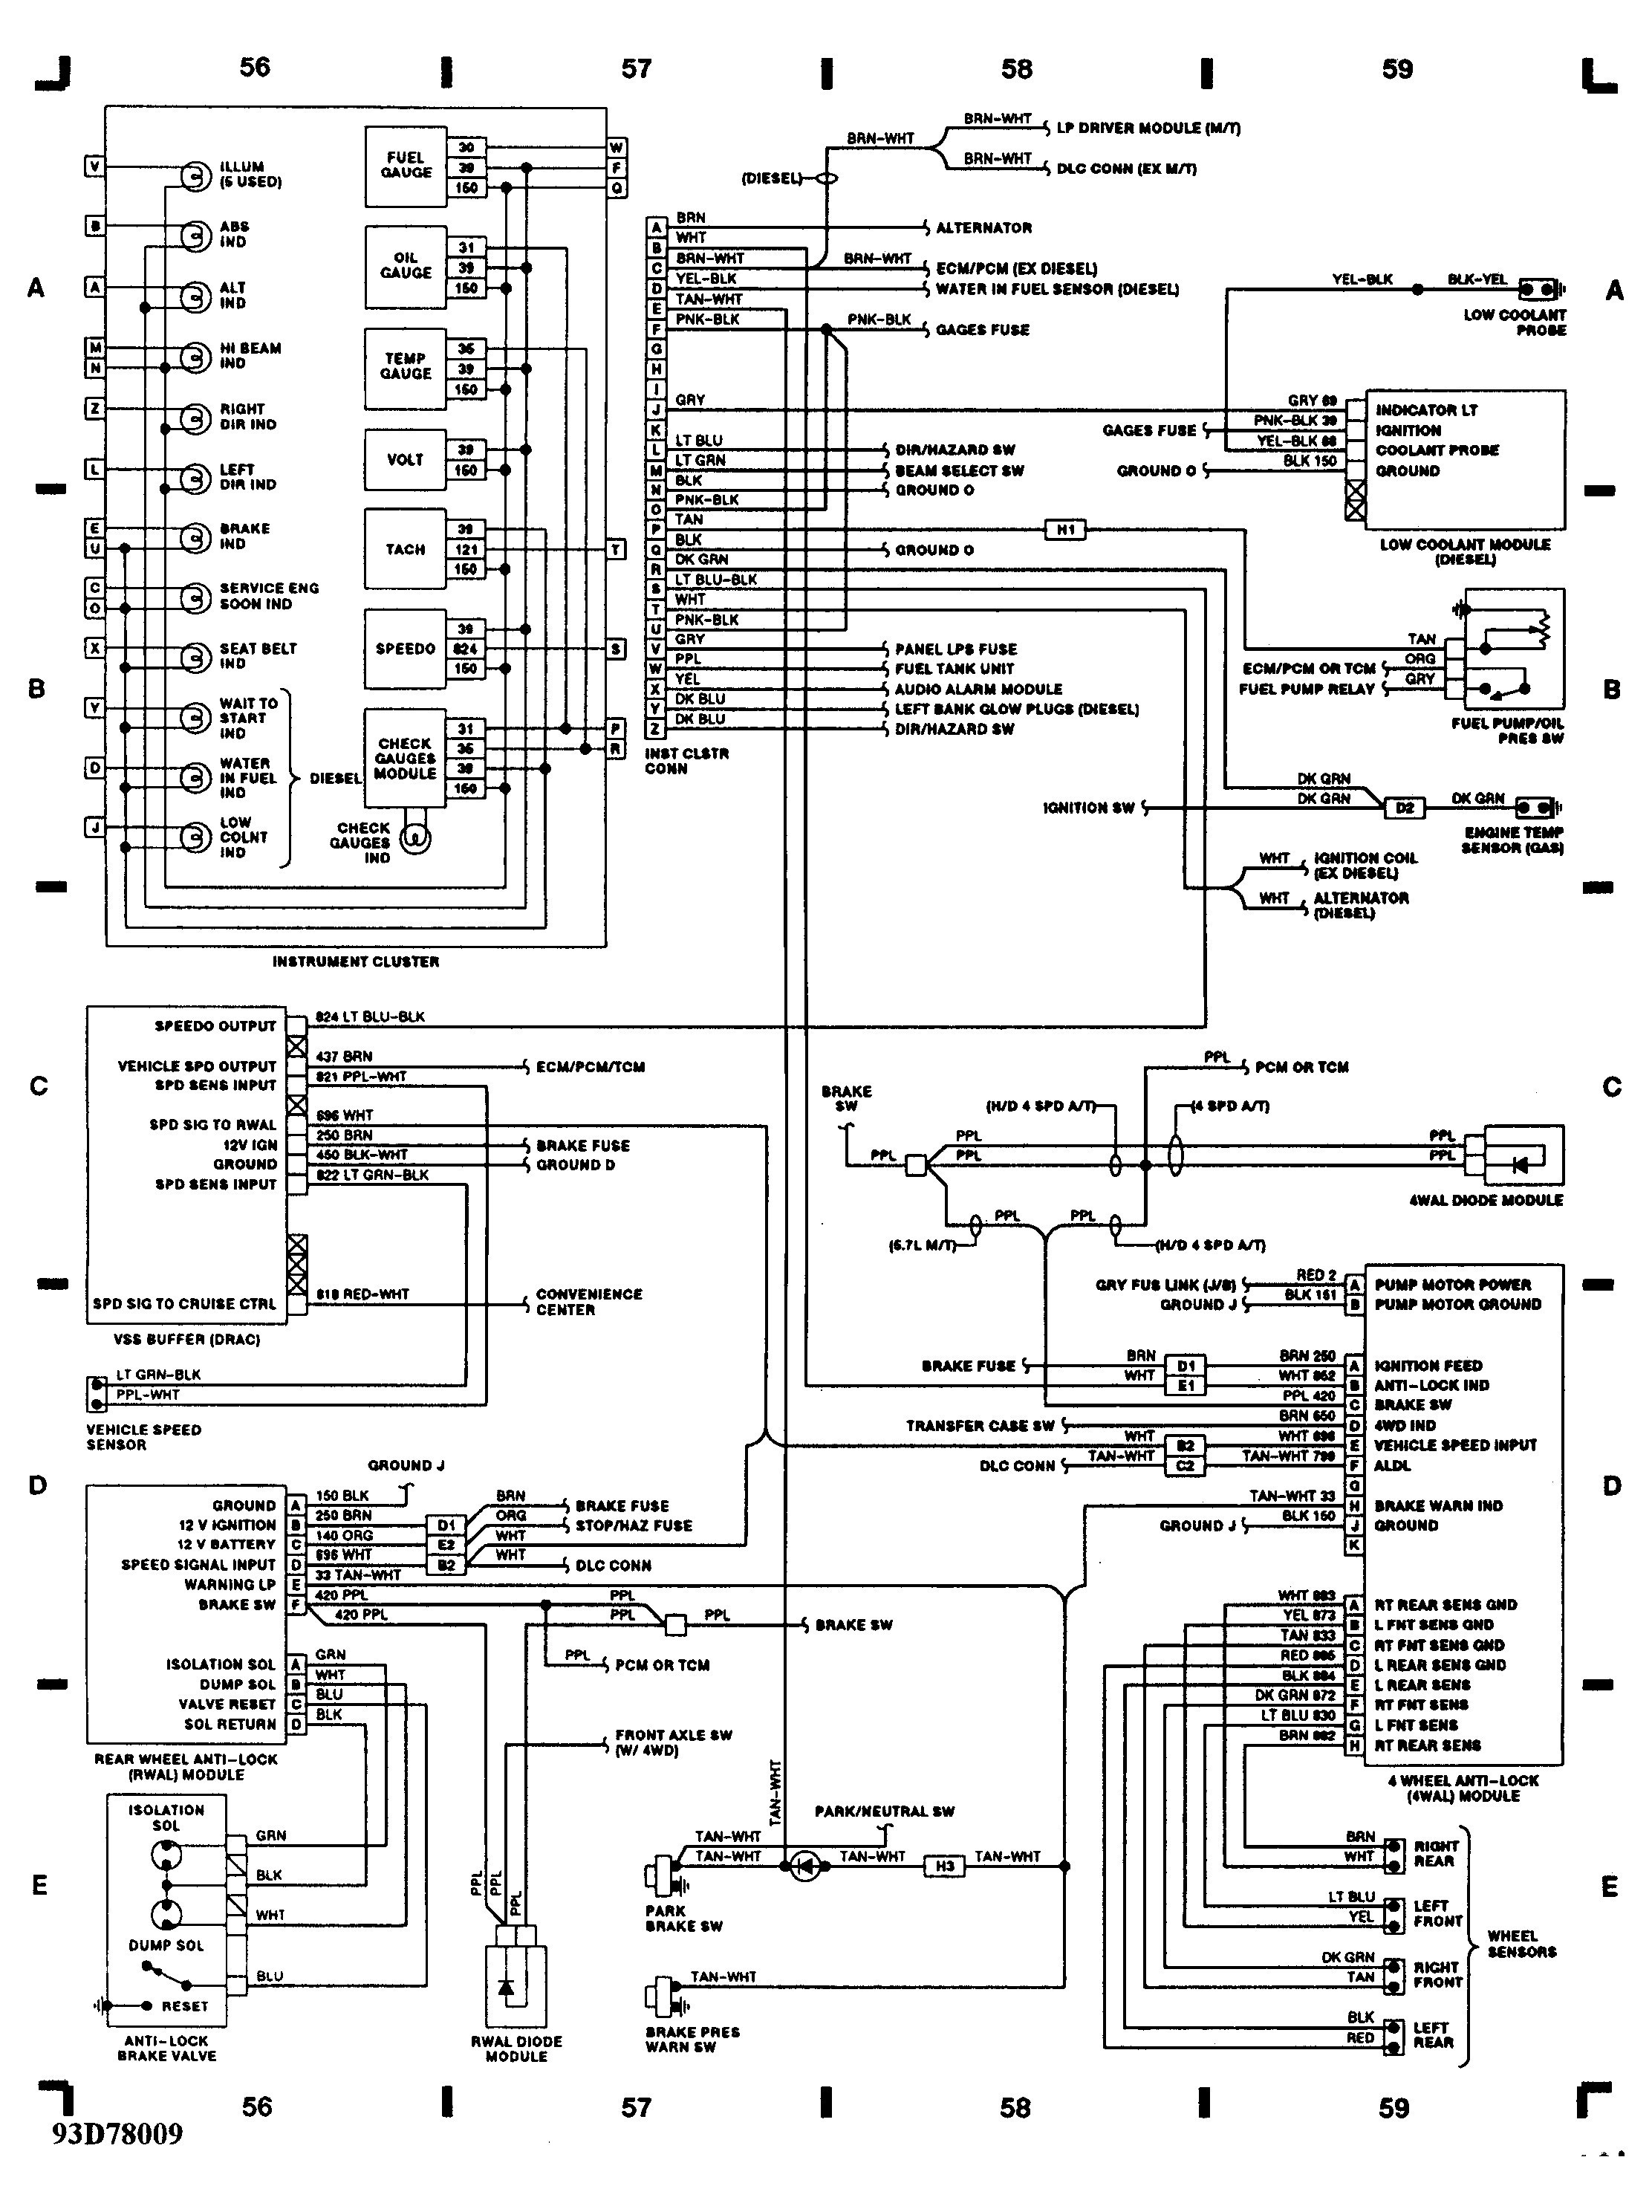 2007 Mustang Engine Diagram Archive Of Automotive Wiring 2002 V6 Trusted Rh Dafpods Co Gt